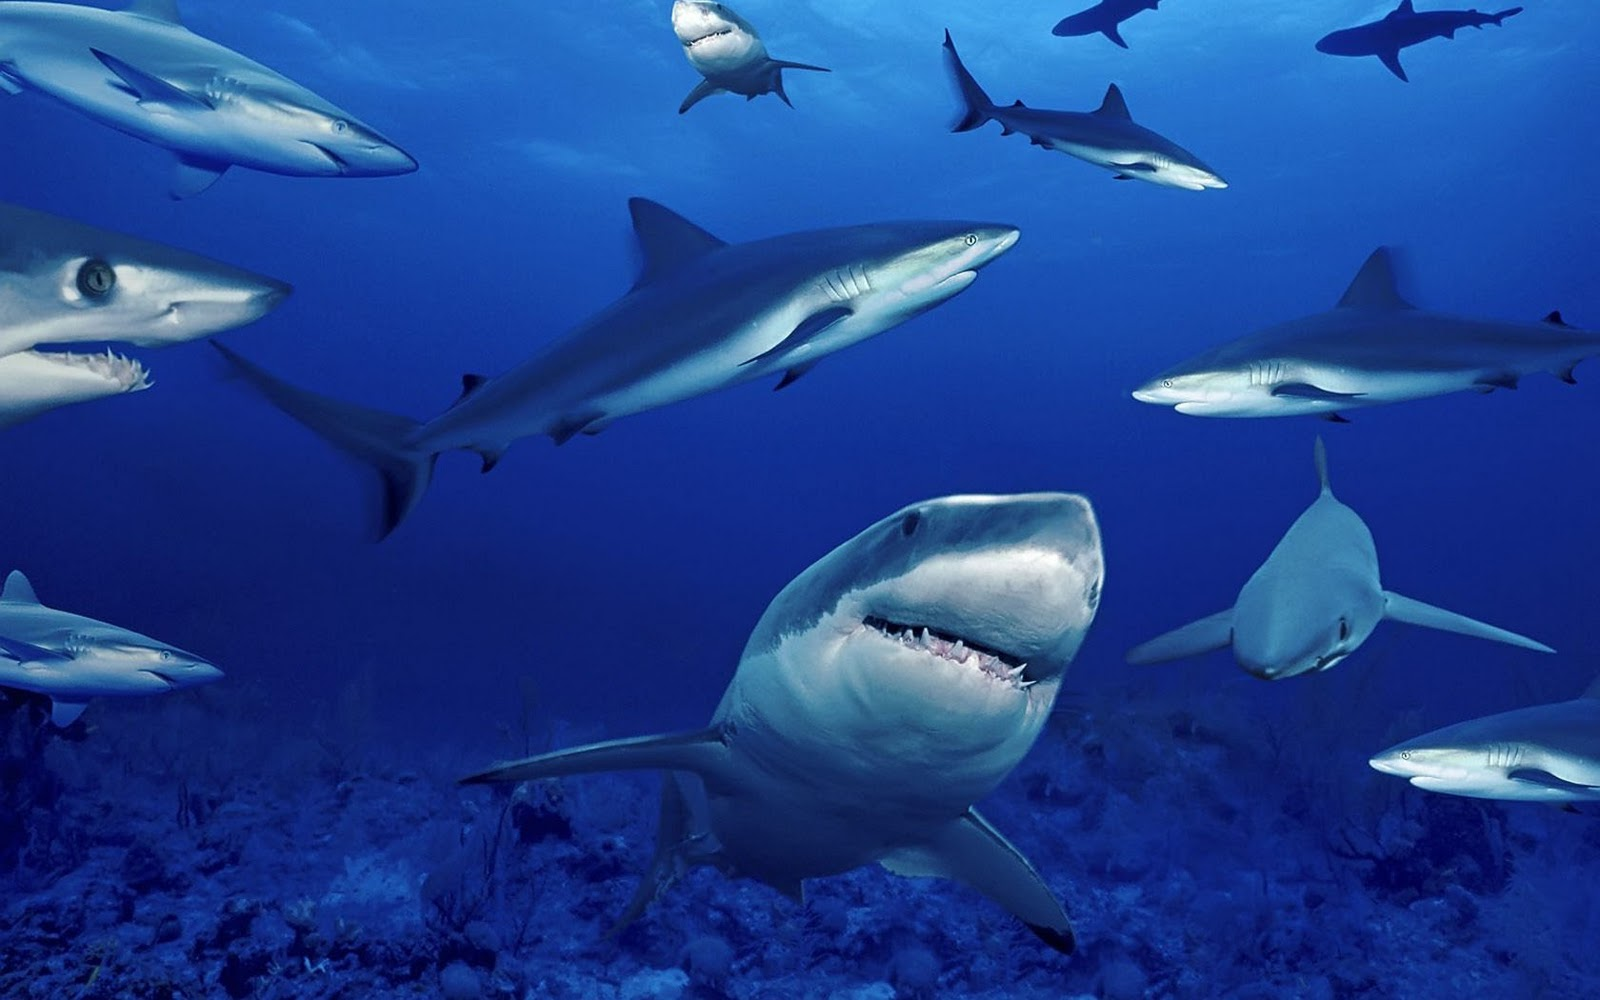 Hd Quotes Wallpapers For Windows 7 Shark Wallpaper Hd Shark Pictures Hd Animal Wallpapers